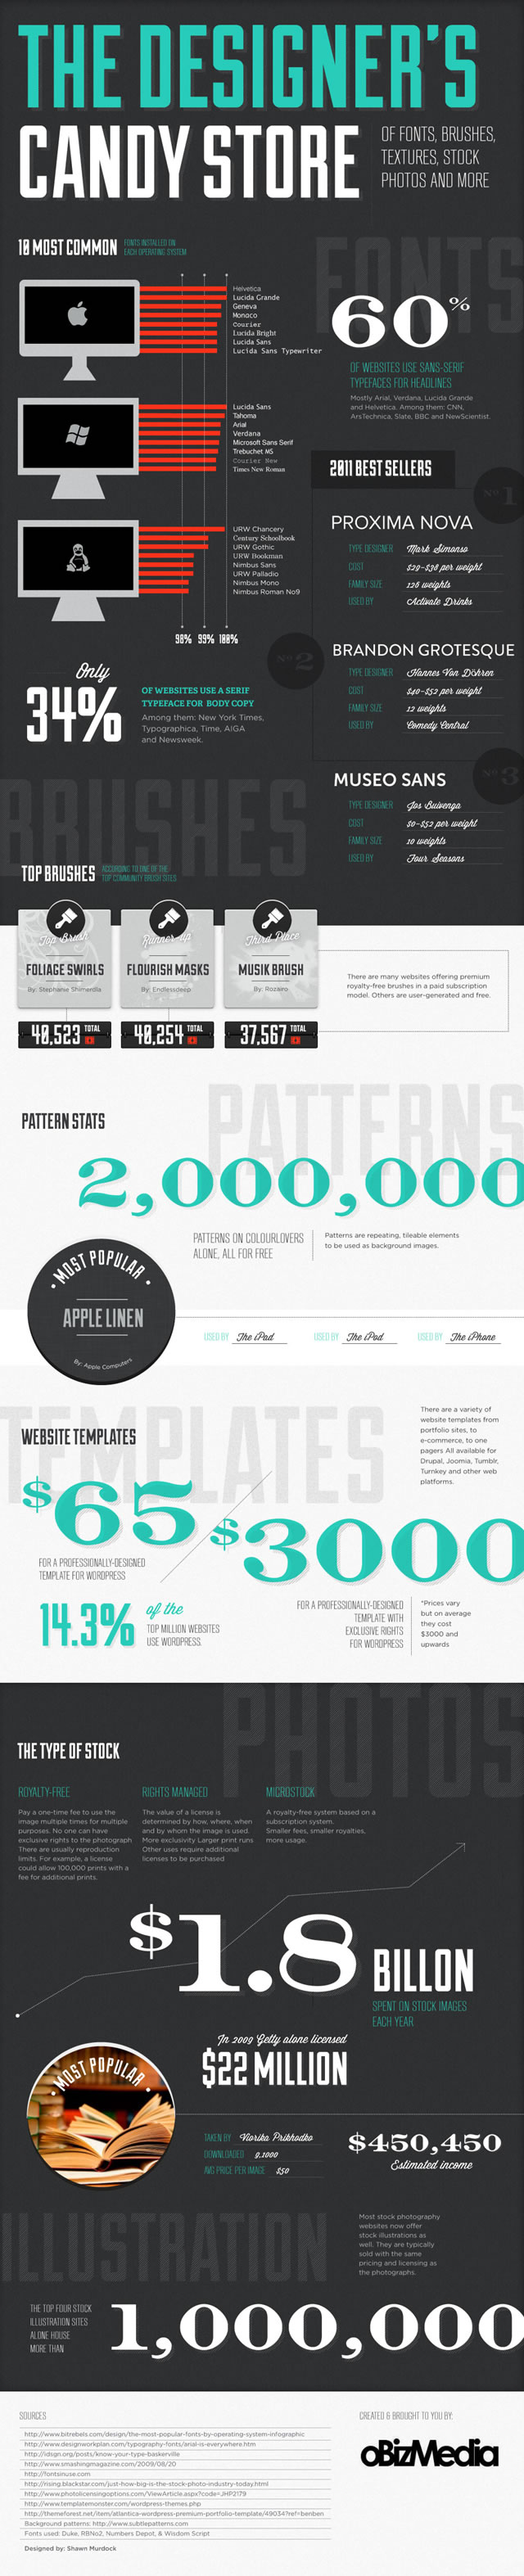 The Designer's Candy Store Infographic